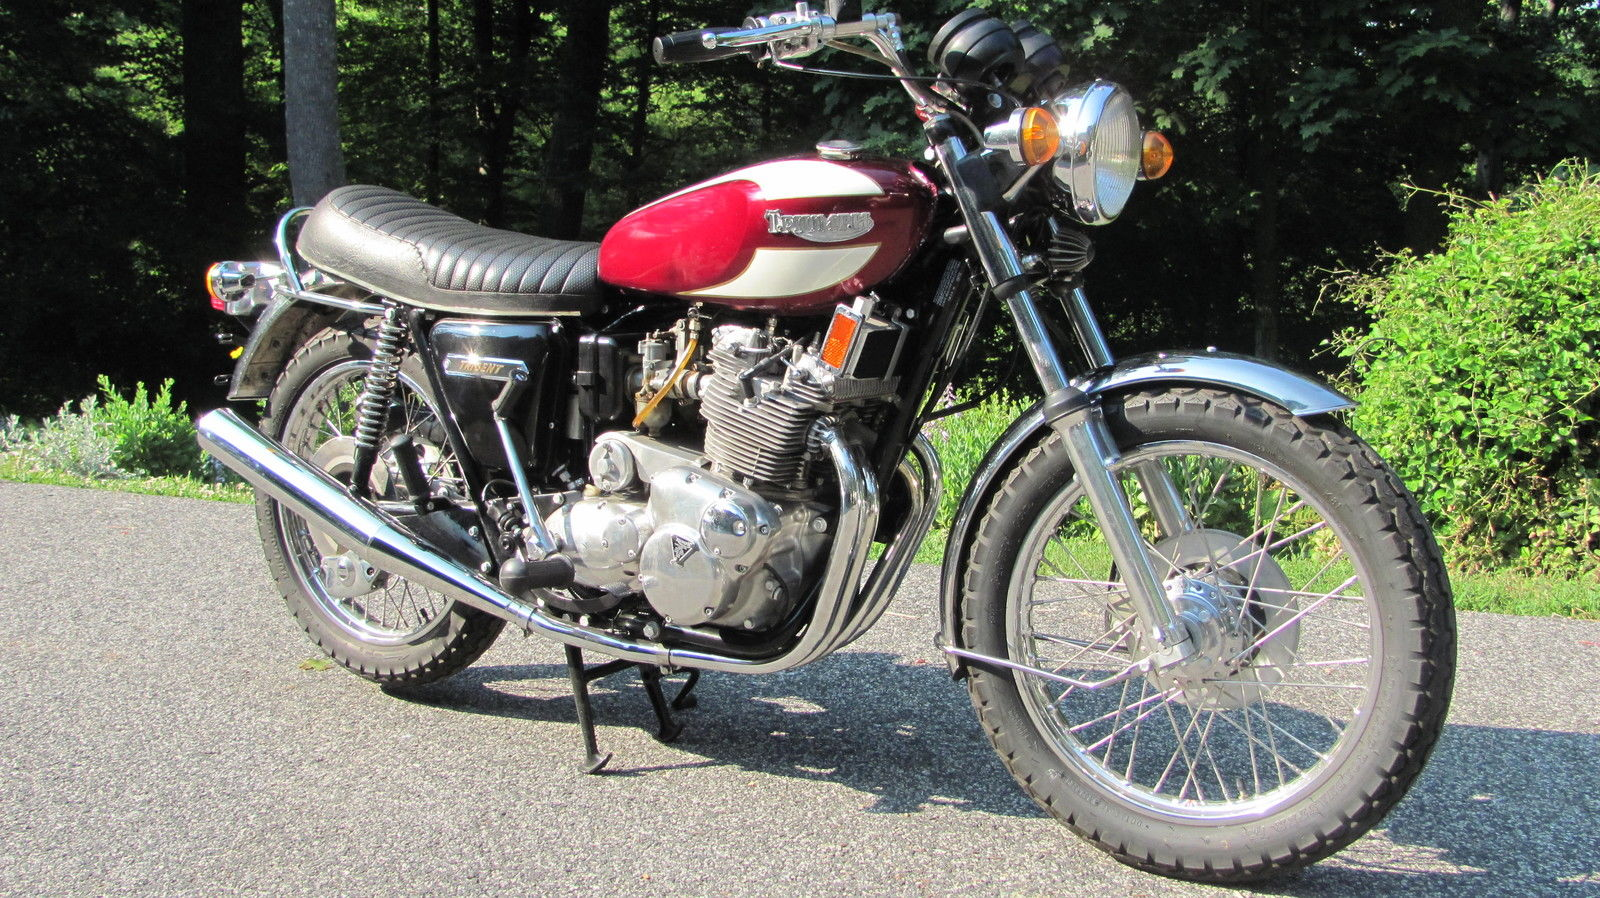 Triumph Trident T160 - 1975 - Oil Cooler, Fuel Tank, Engine and Gearbox, Carburettors, Cylinder Head and Downpipes.